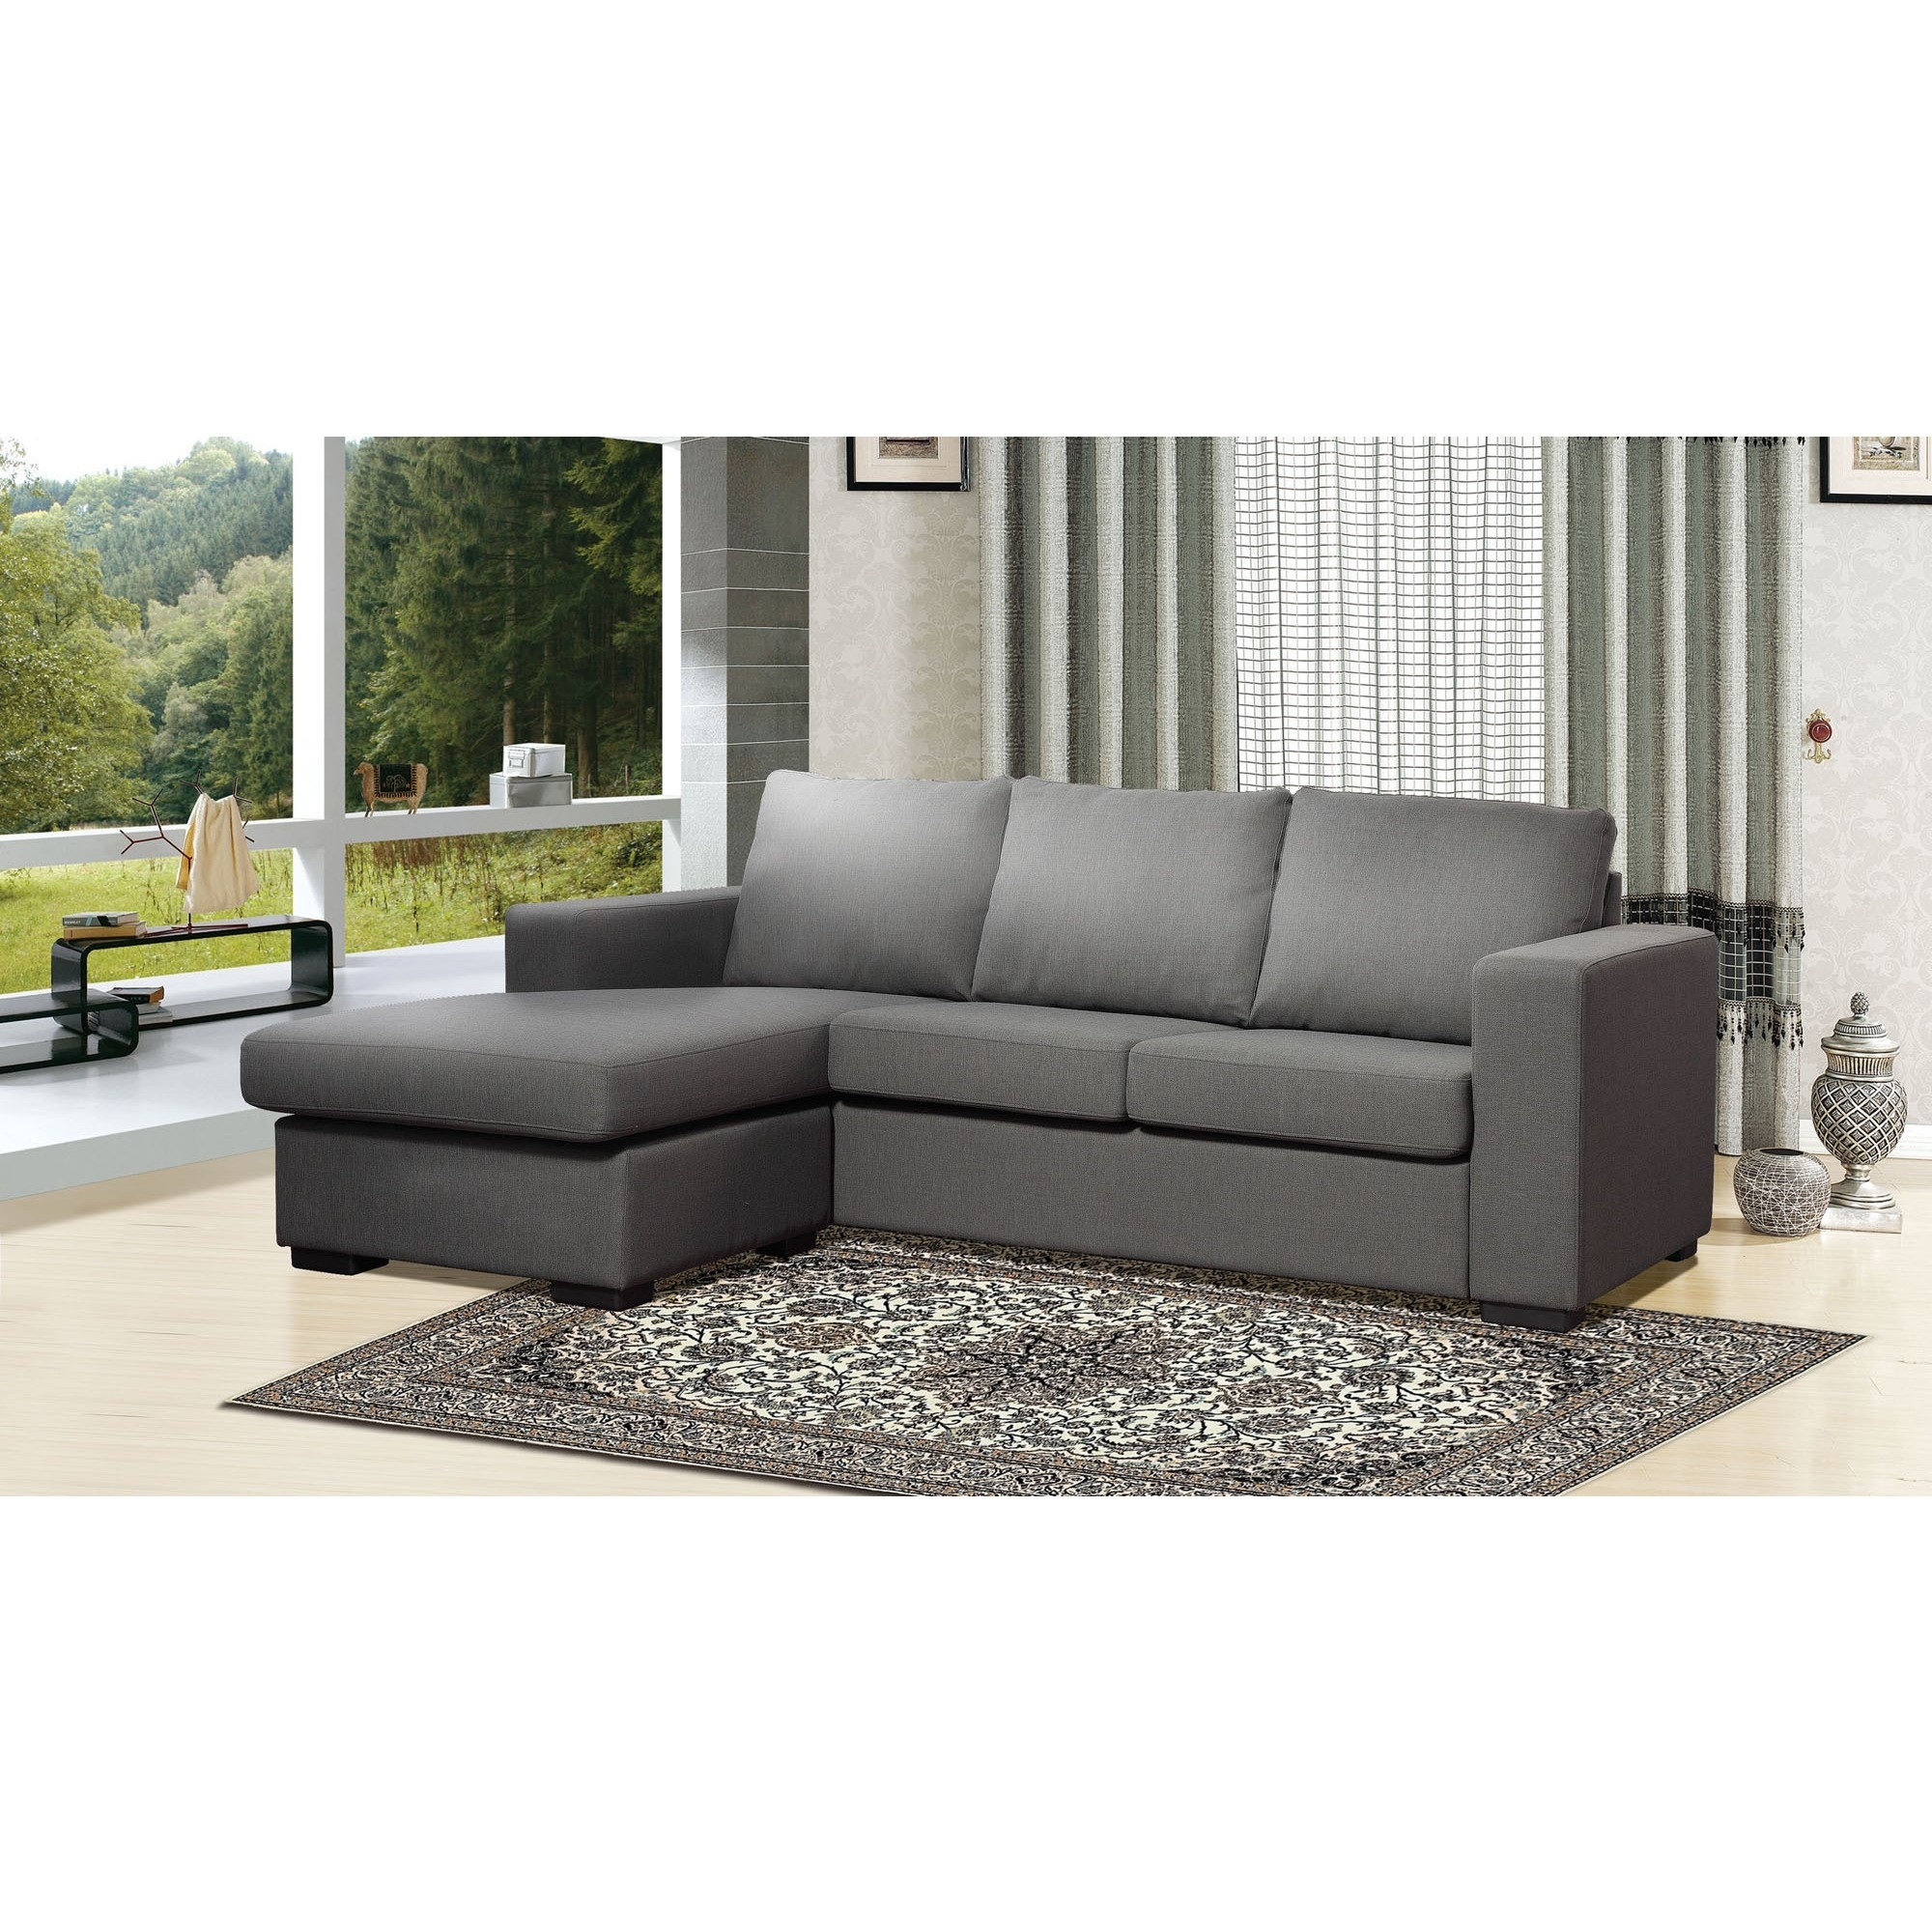 10 Inspirations Sectional Sofas At Bc Canada